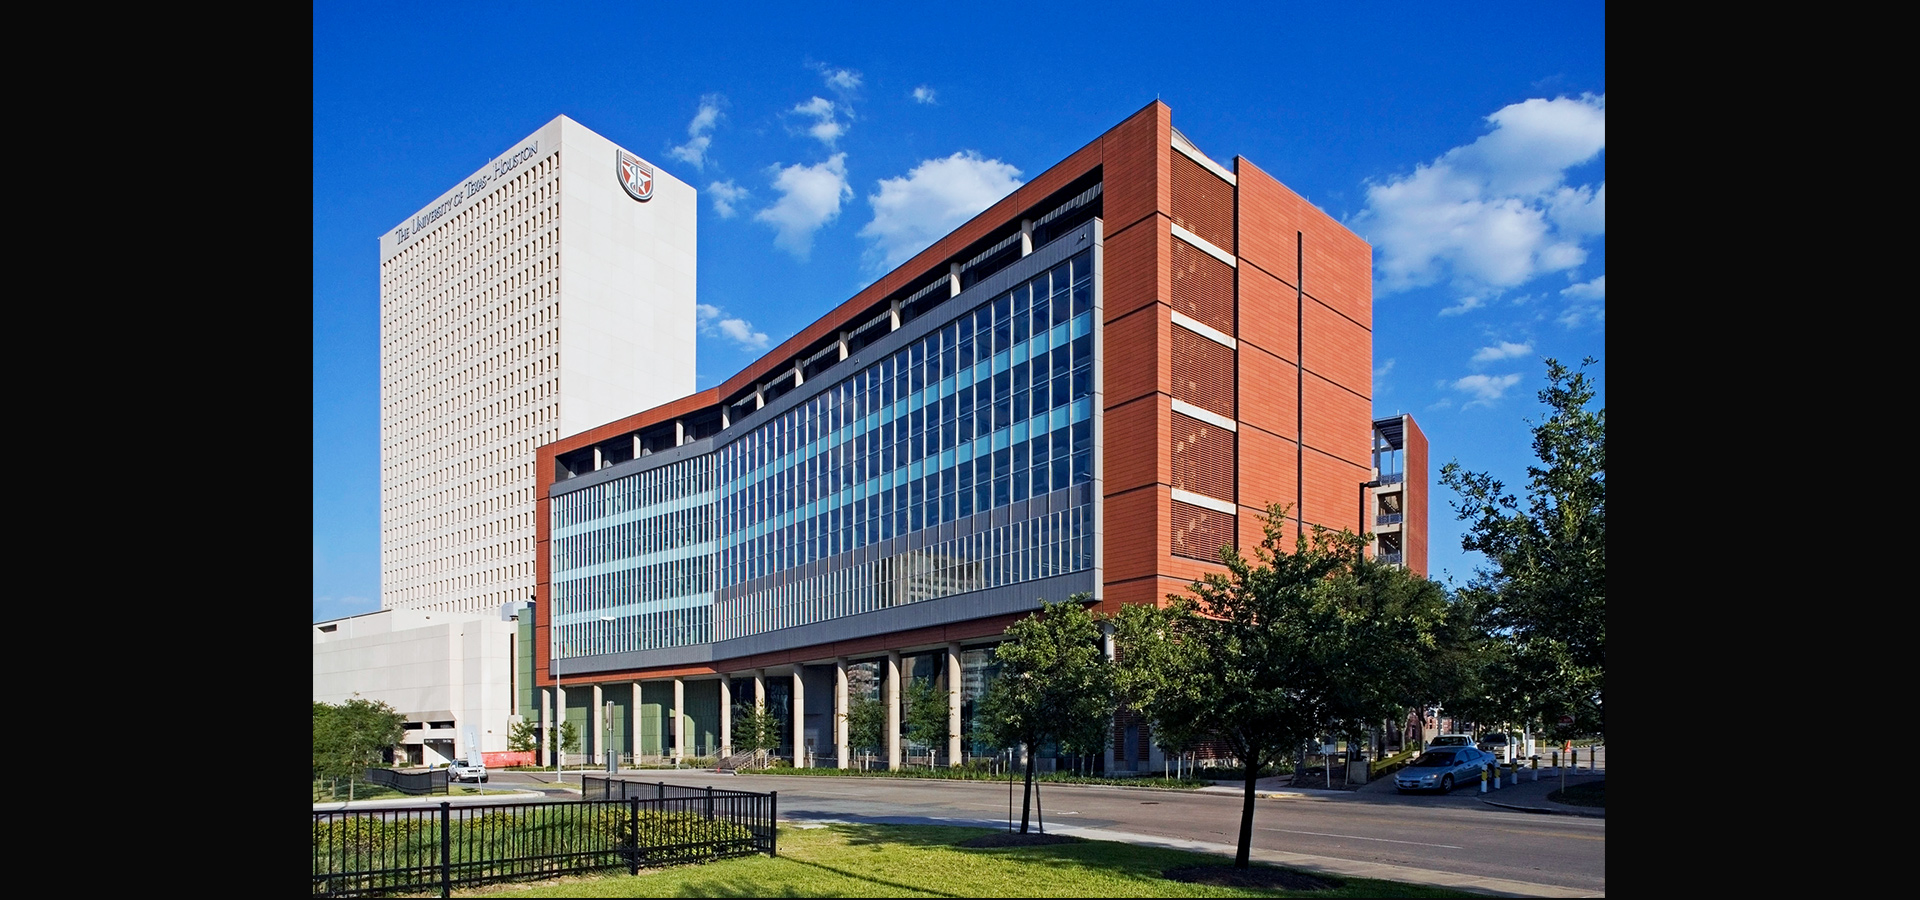 UNIVERSITY OF TEXAS HEALTH SCIENCE CENTER*